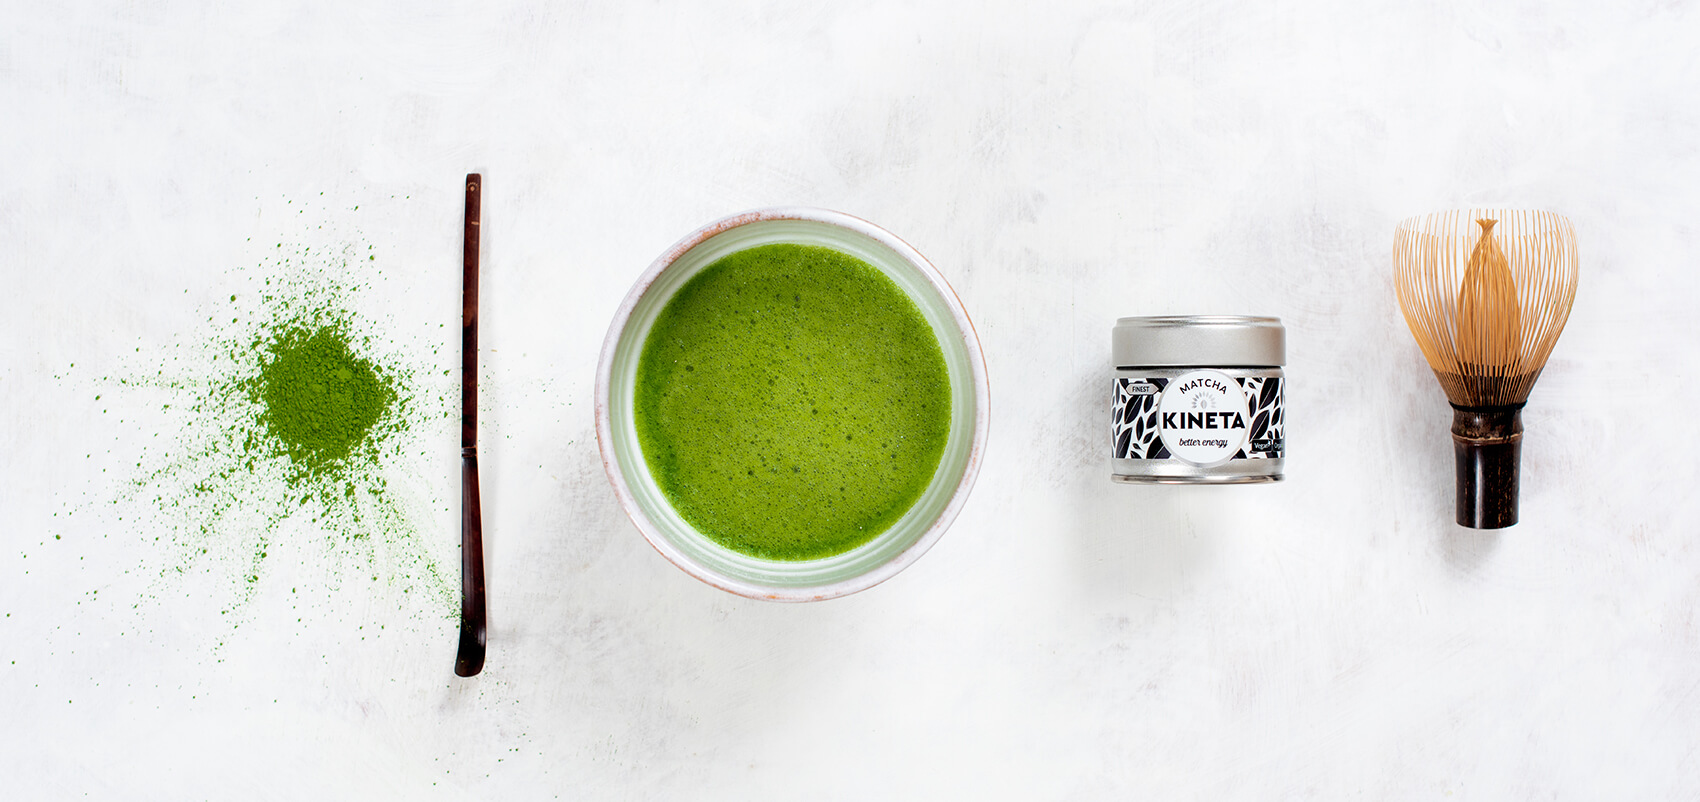 Kineta Finest Matcha Tea powder, bowl, whisk and bamboo spoon on a slate background